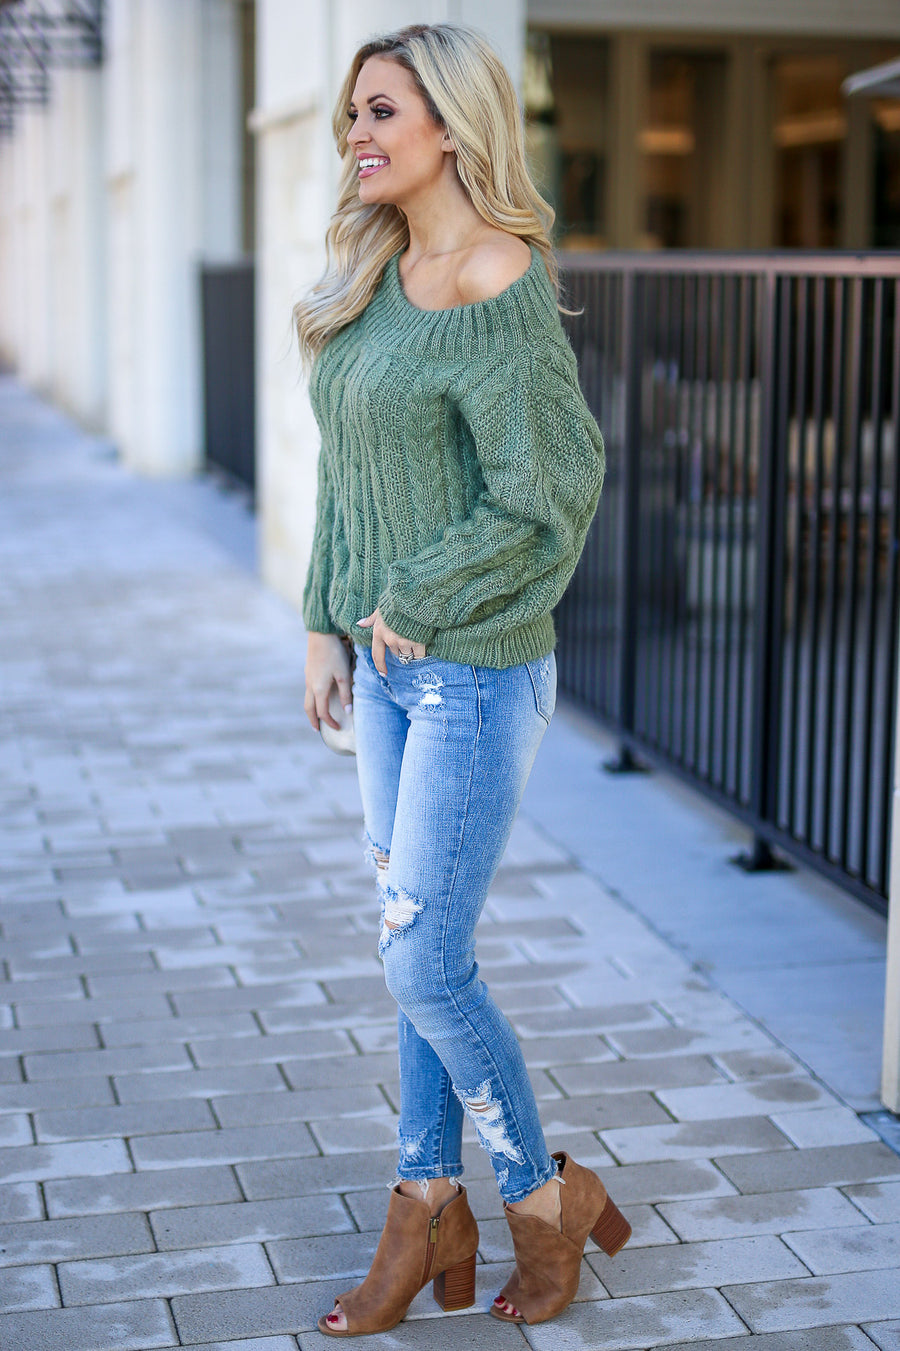 Down To Chill Sweater - Sage women's off the shoulder cable knit sweater top, Closet Candy Boutique 1